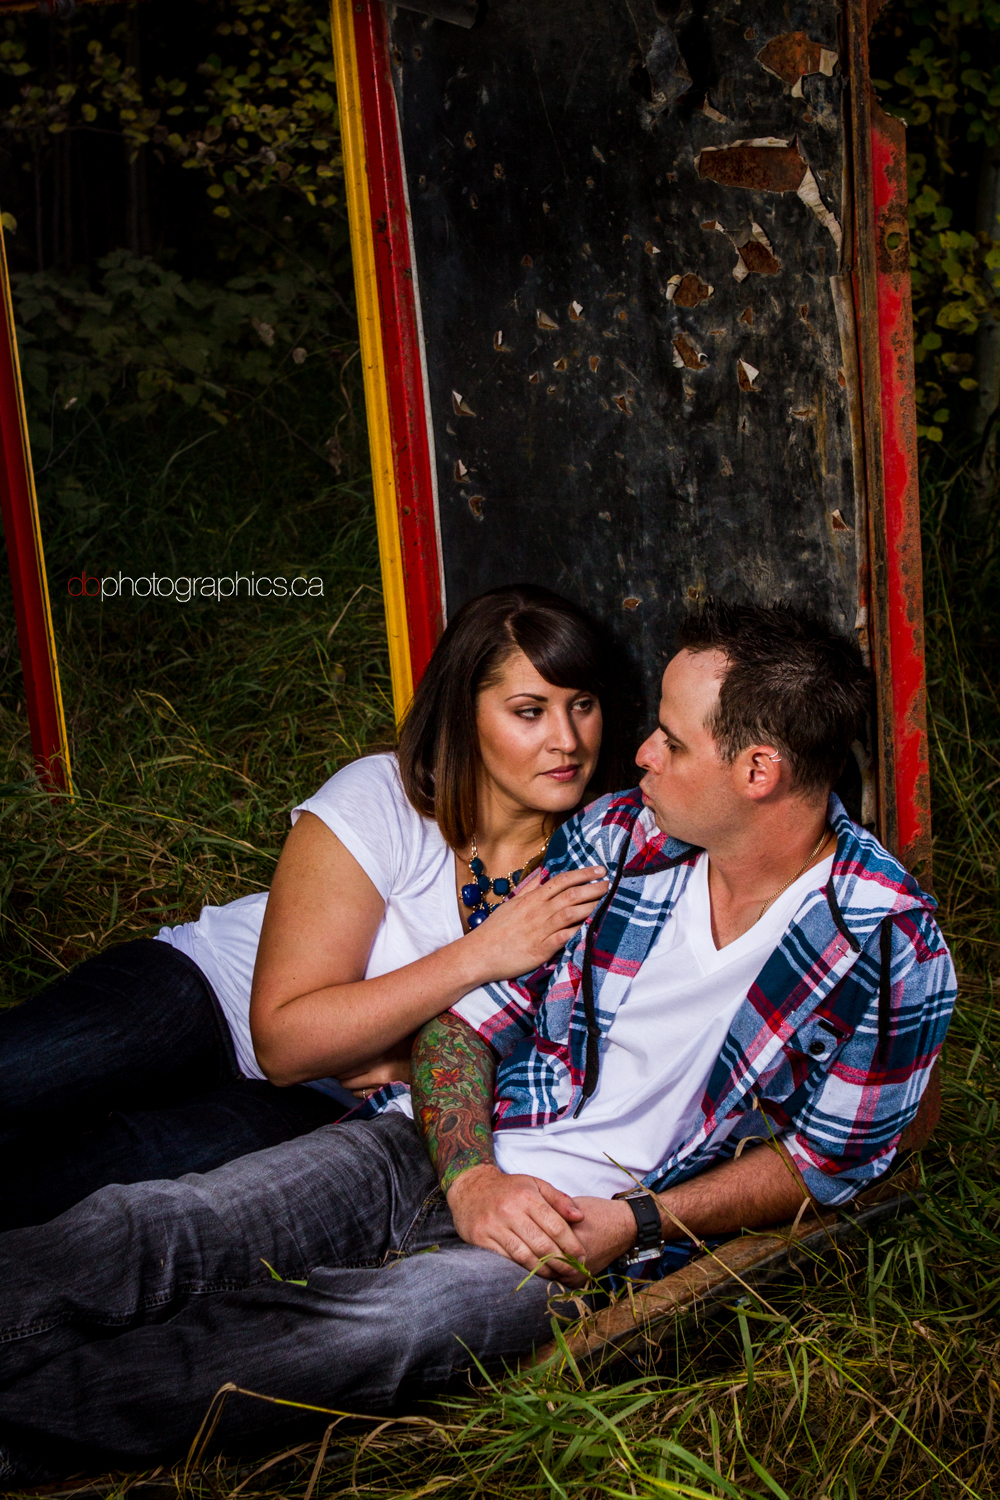 Rob & Alicia Engagement Shoot - 20130922 - 0037.jpg